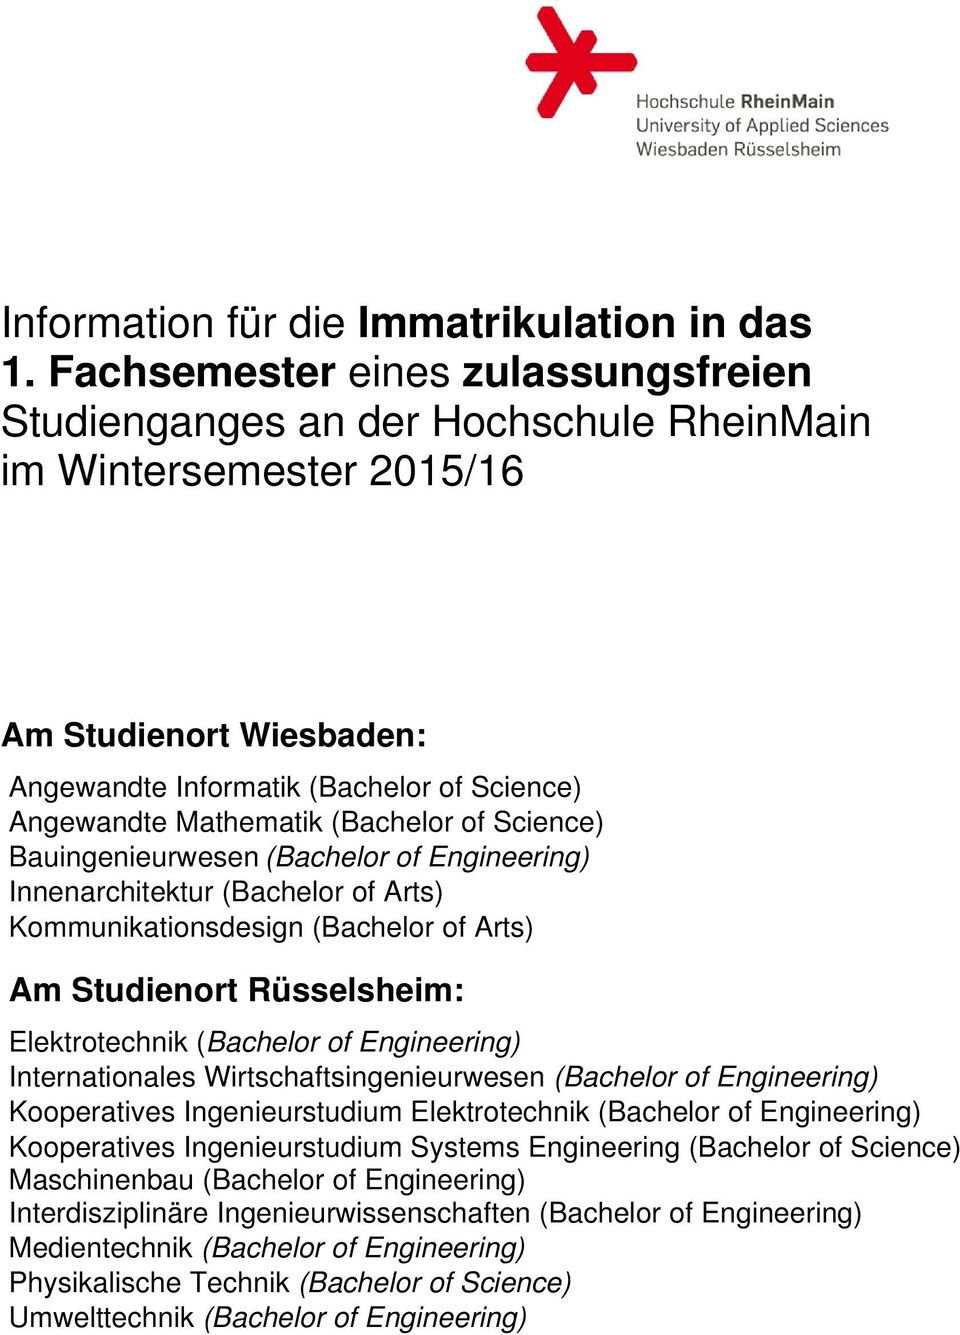 Information f r die immatrikulation in das 1 fachsemester for Innenarchitektur bachelor of arts